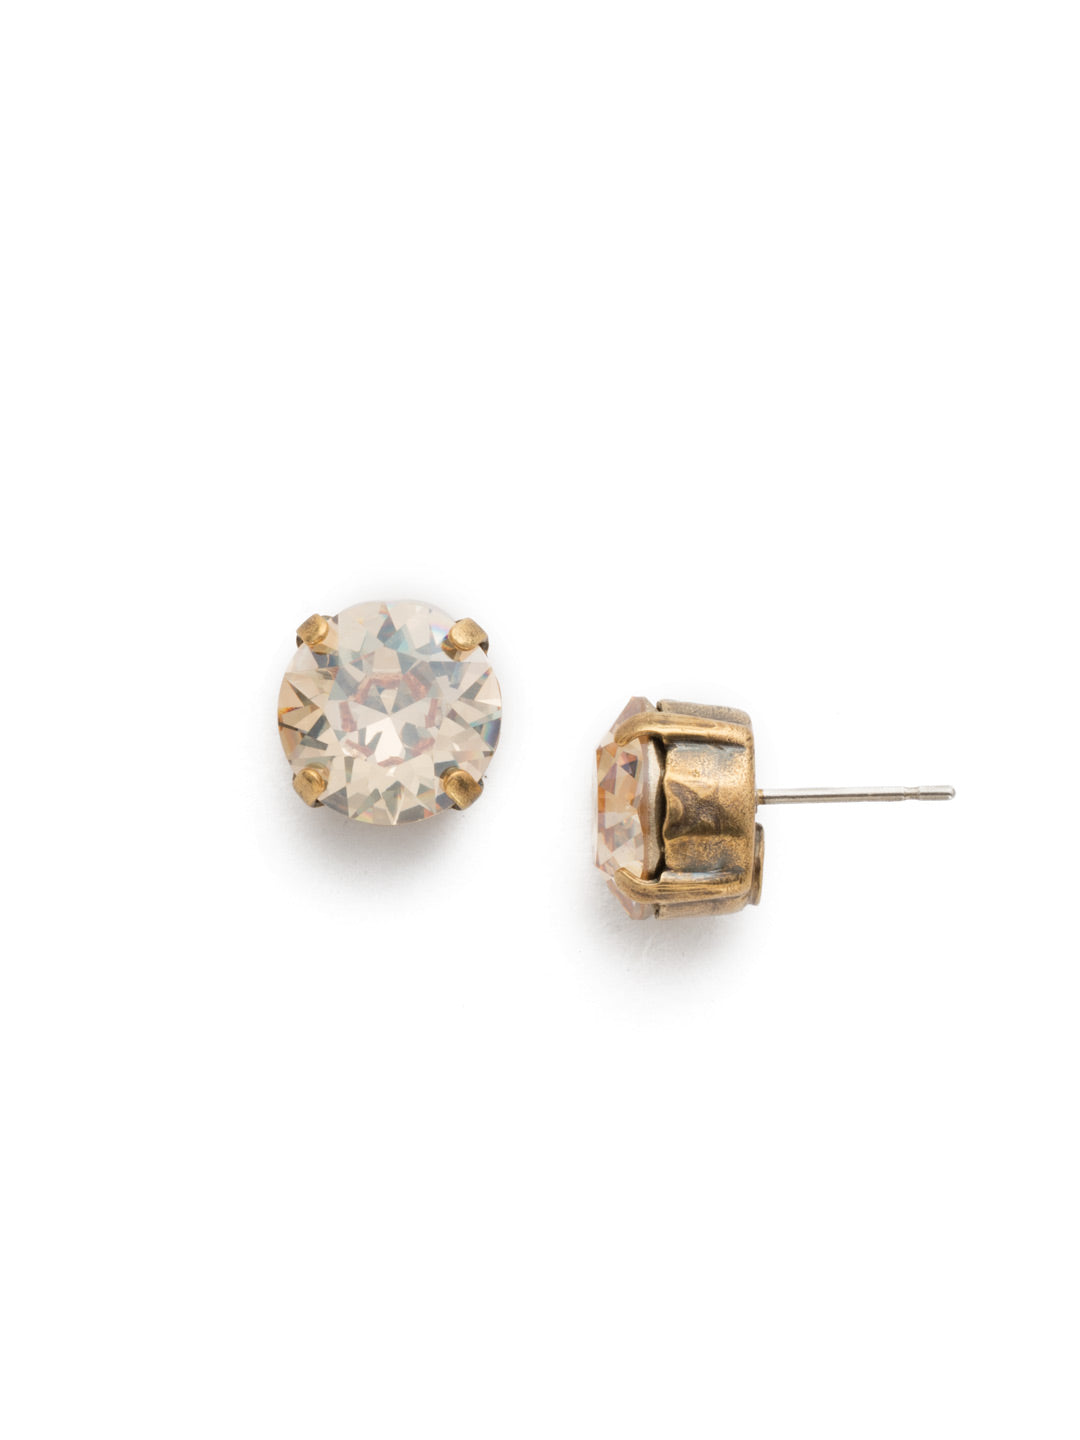 Round Crystal Stud Earrings - ECM14AGDCH